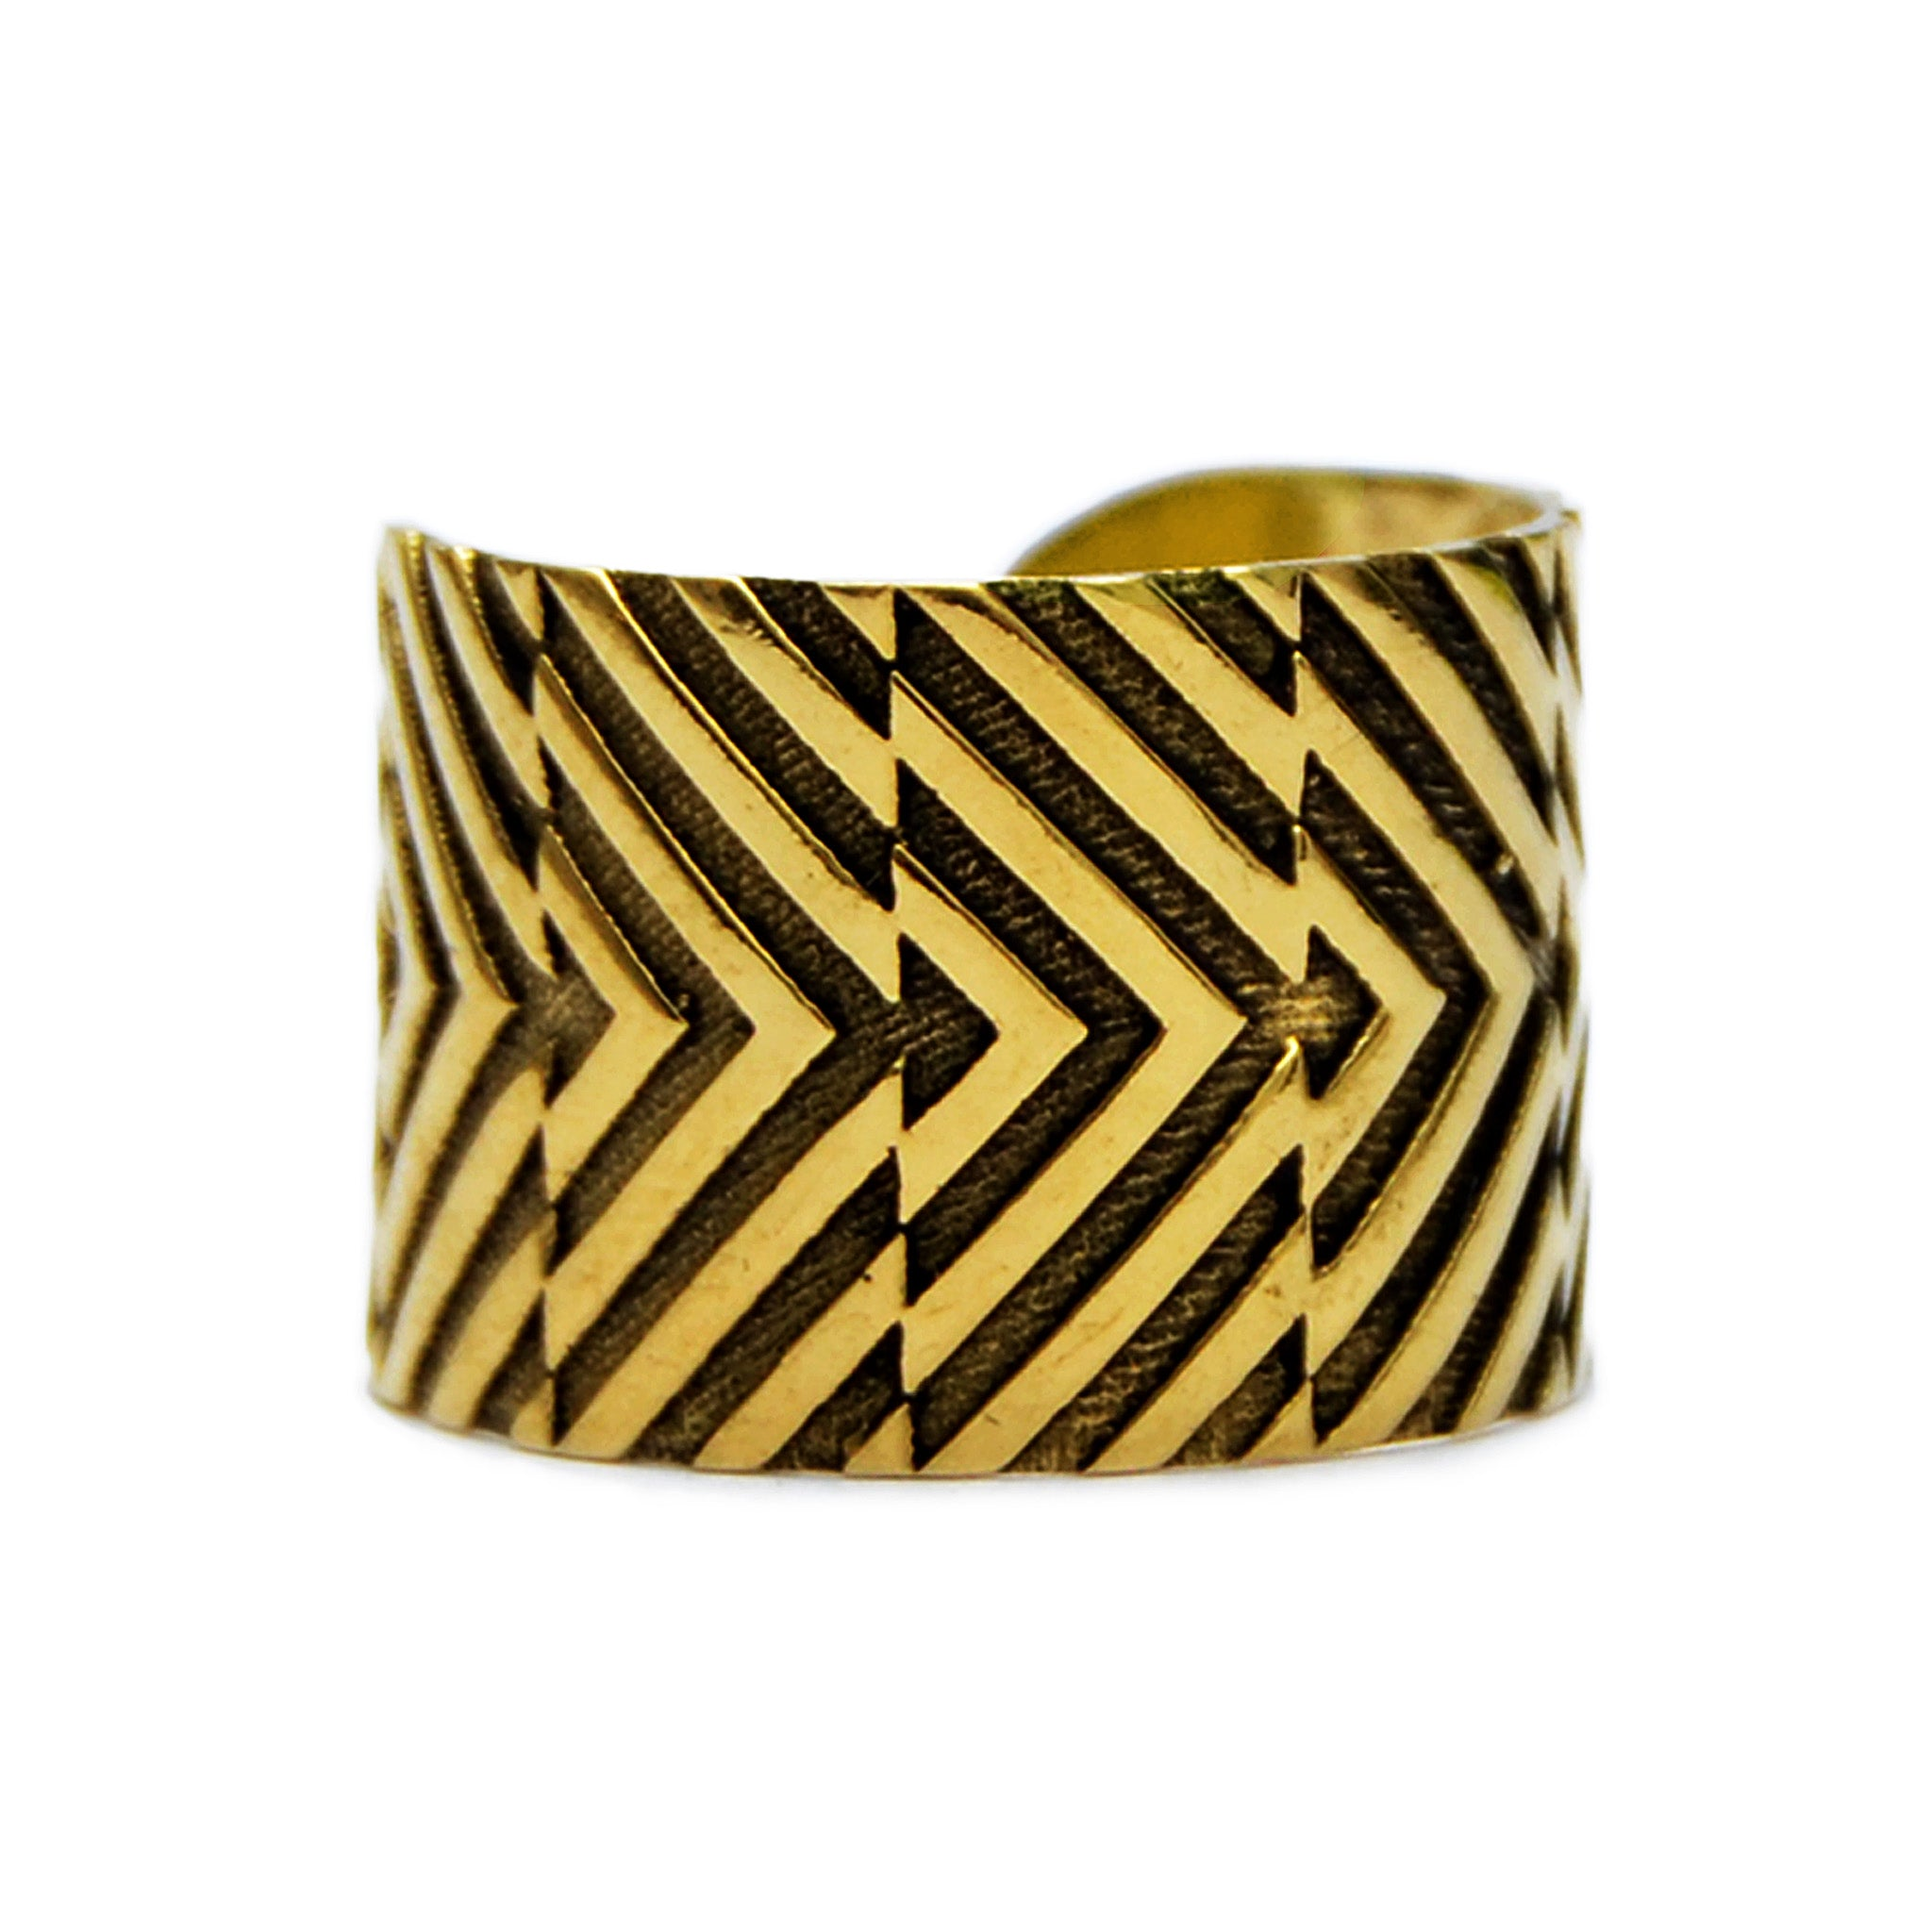 Brass adjustable ring